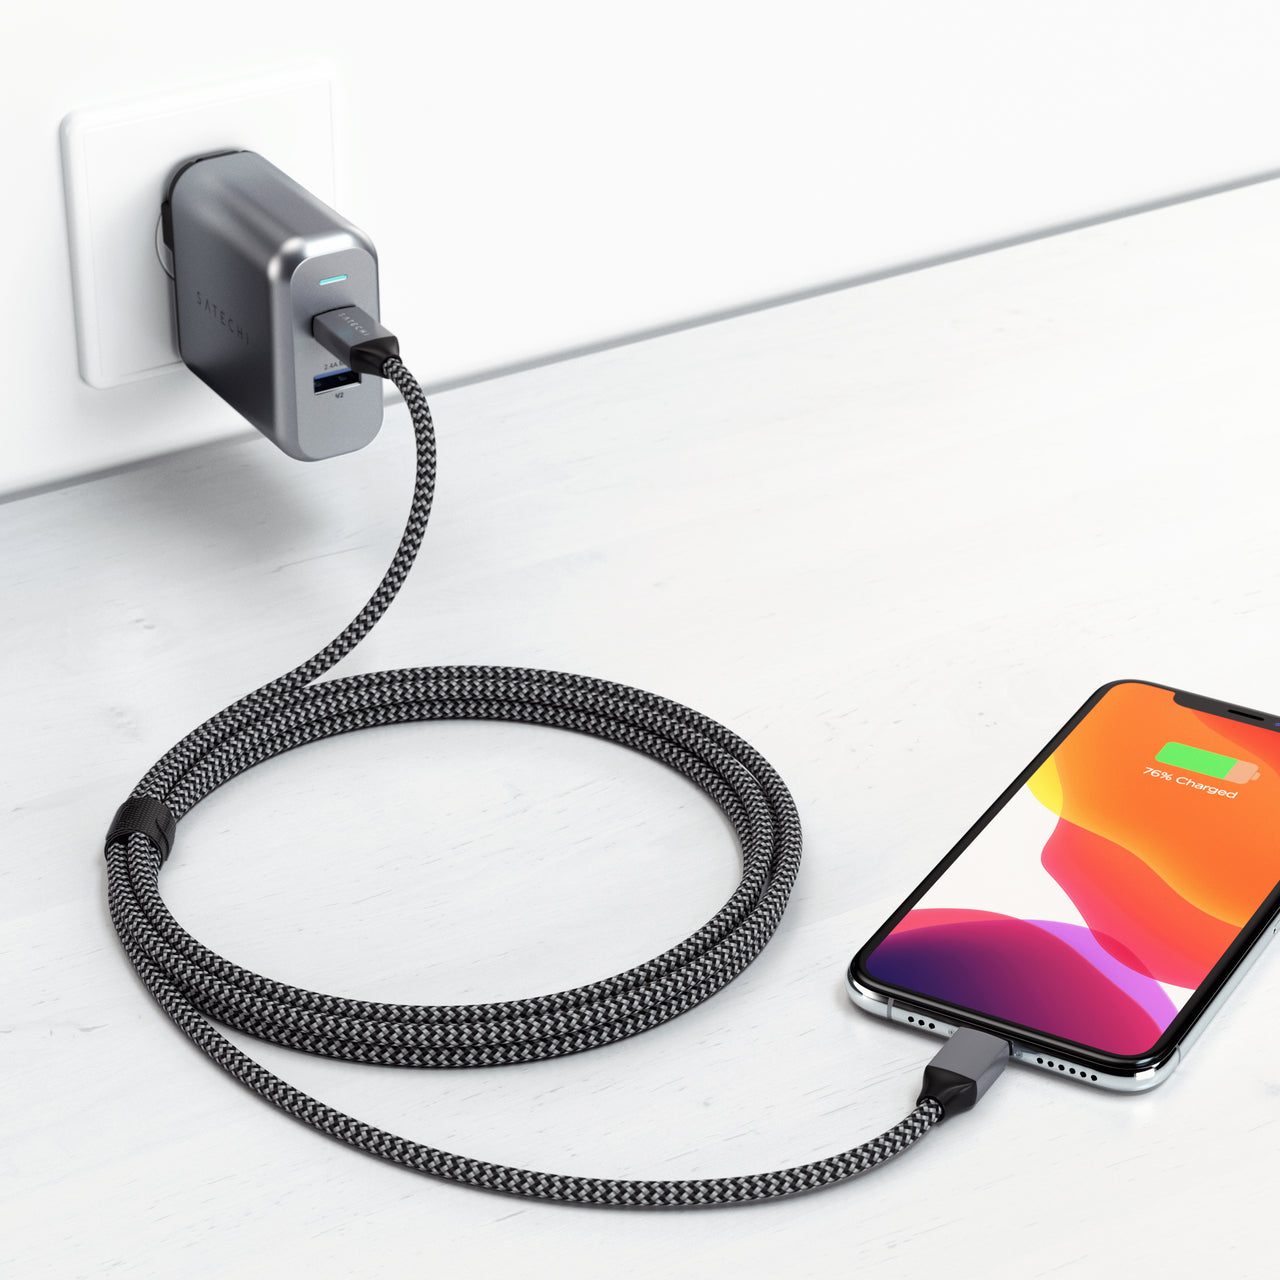 USB-C to Lightning Cable - Apple MFi Certified